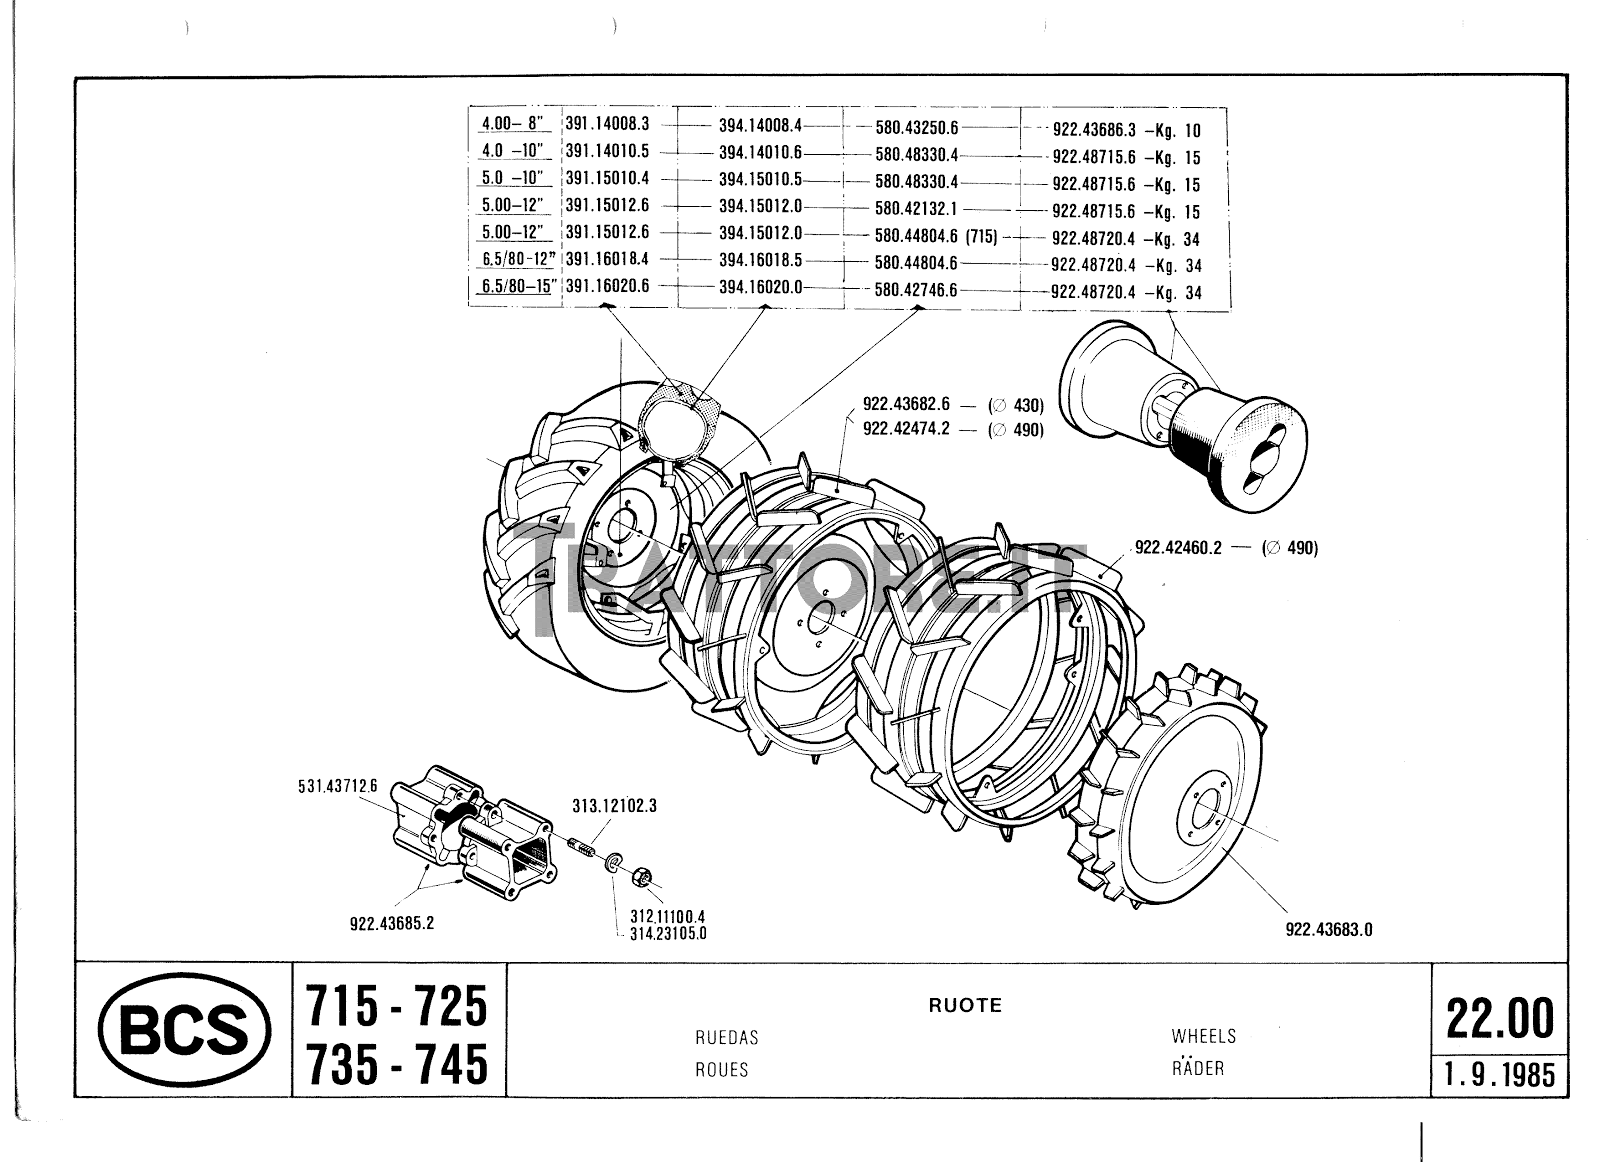 F20 1 Series Owners Manual Pdf For Download